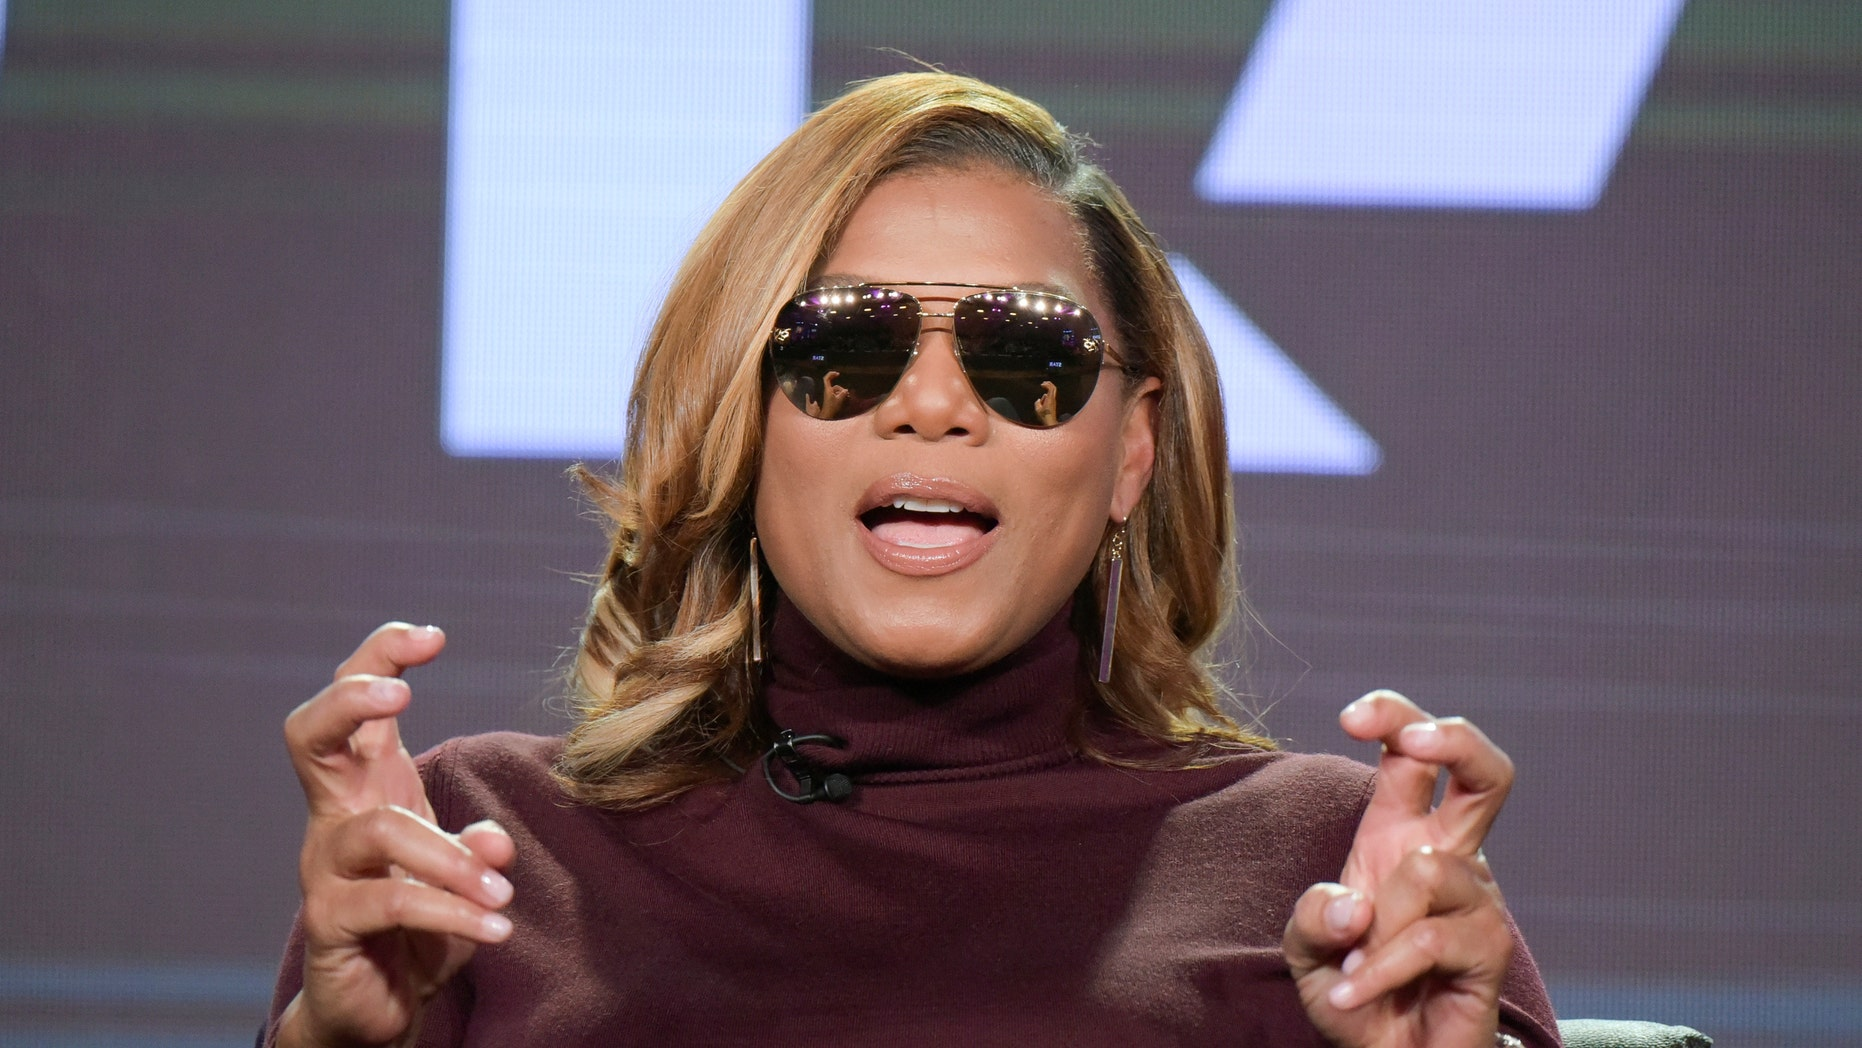 """Queen Latifah speaks at the """"Star"""" panel at the FOX portion of the 2017 Winter Television Critics Association press tour on Wednesday, Jan. 11, 2017, in Pasadena, Calif. (Photo by Richard Shotwell/Invision/AP)"""